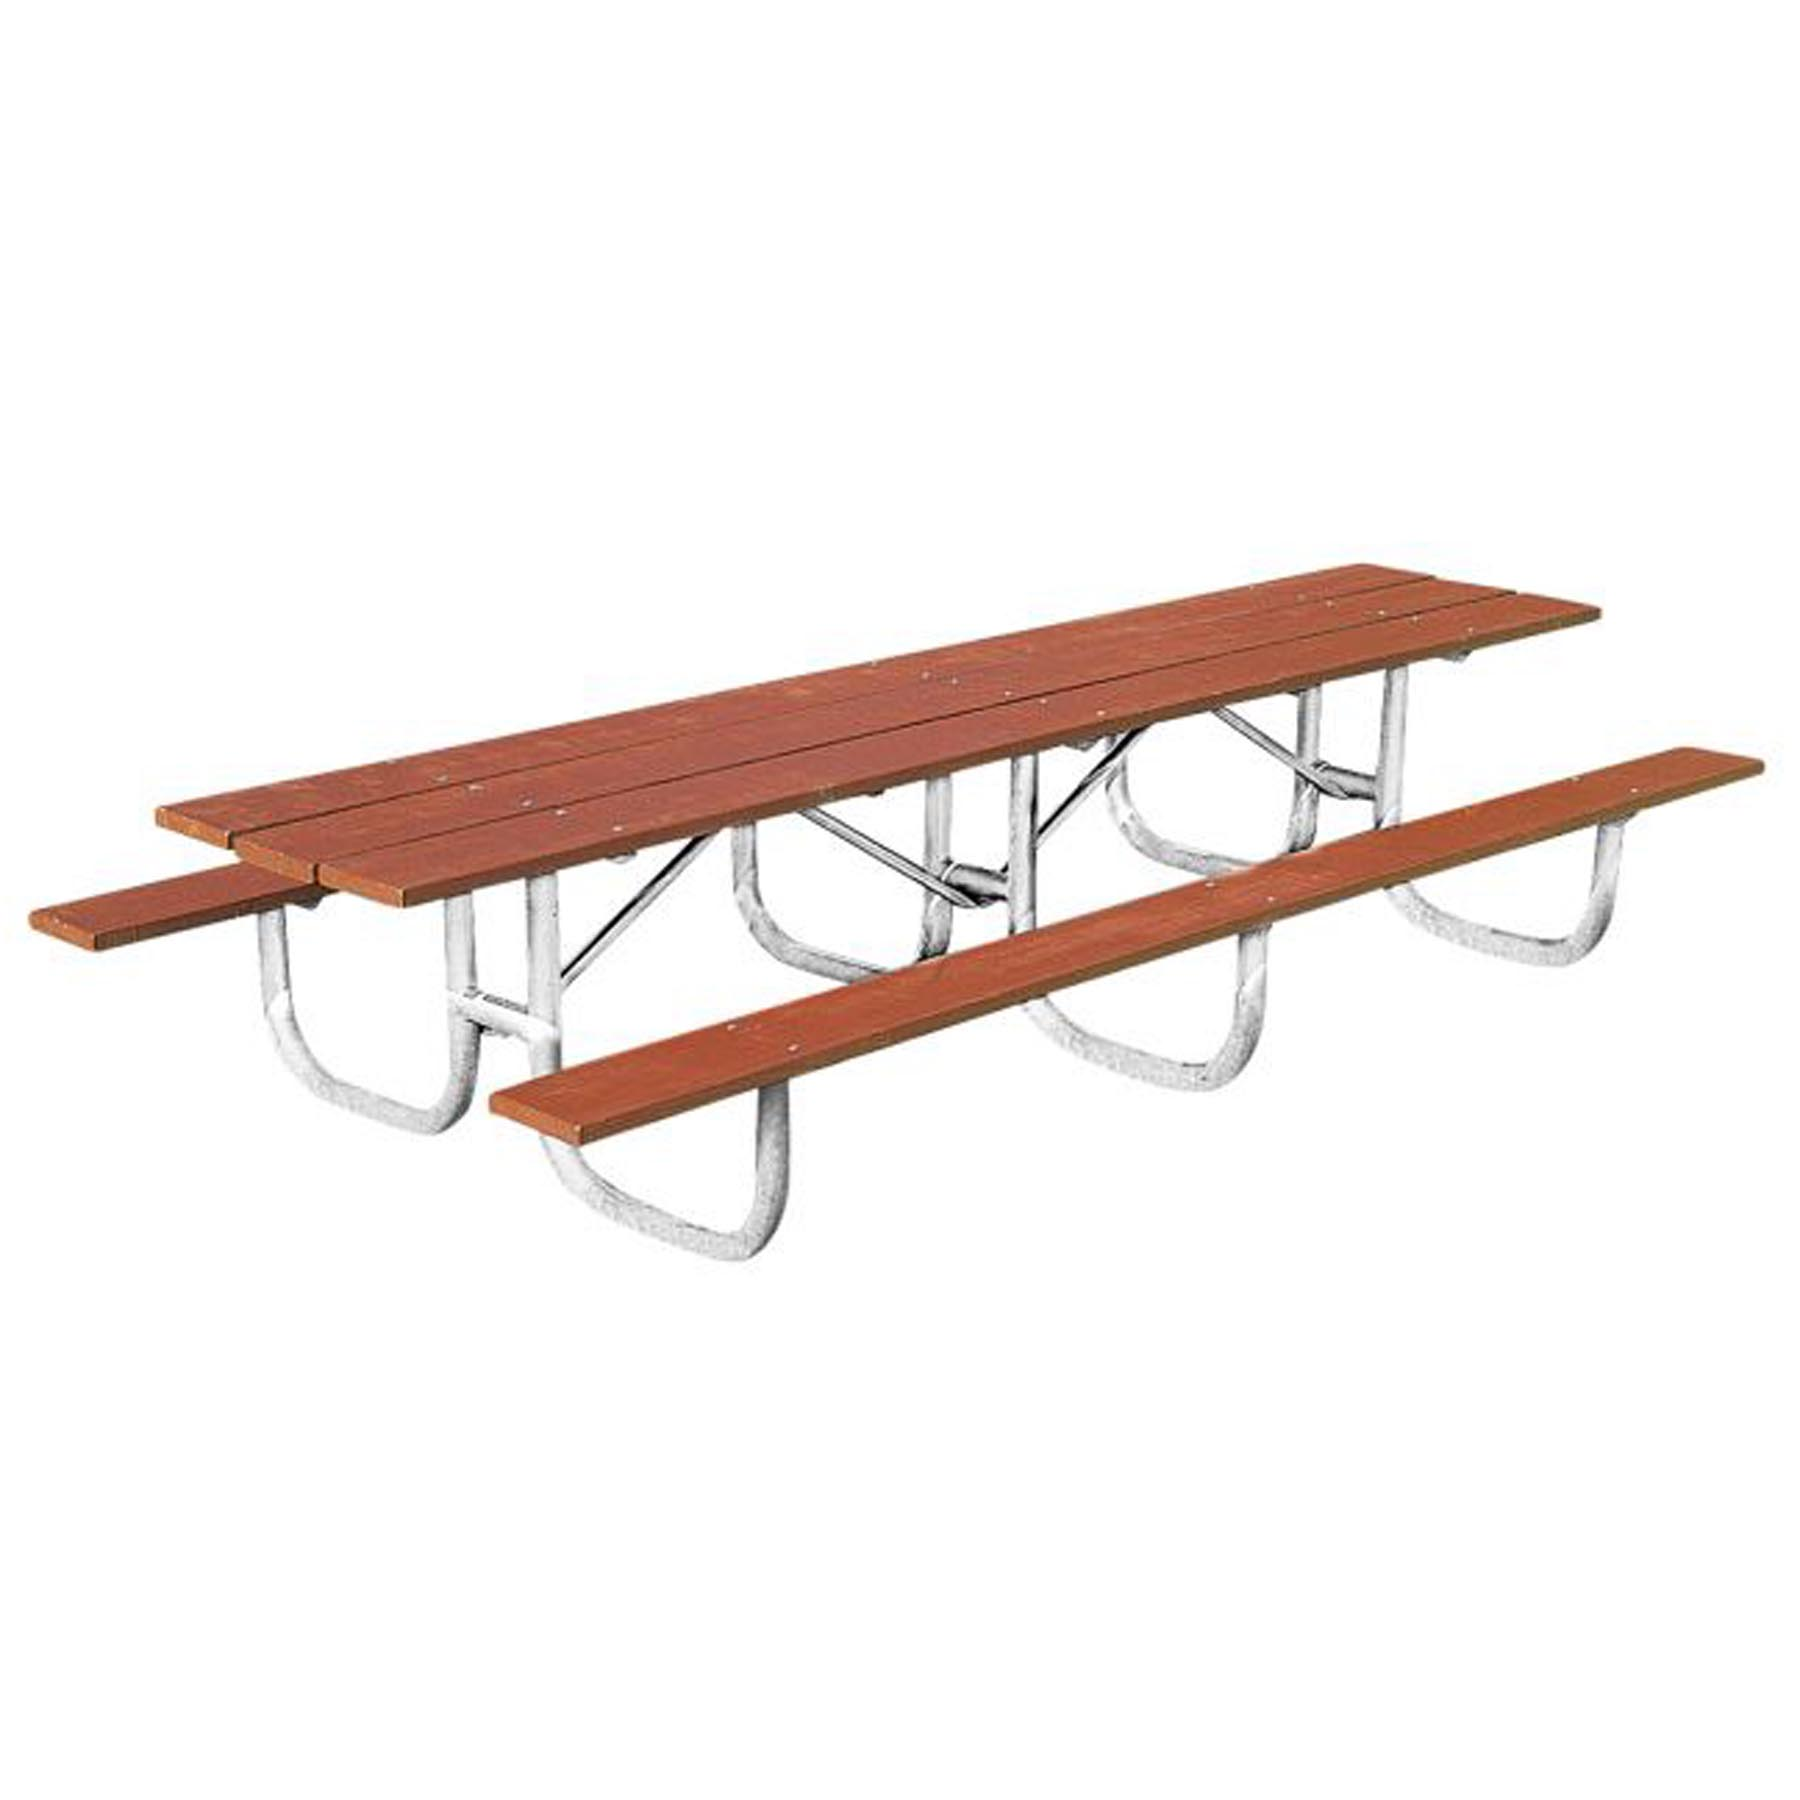 range wooden made outdoor from recycled table picnic cafe tables hand